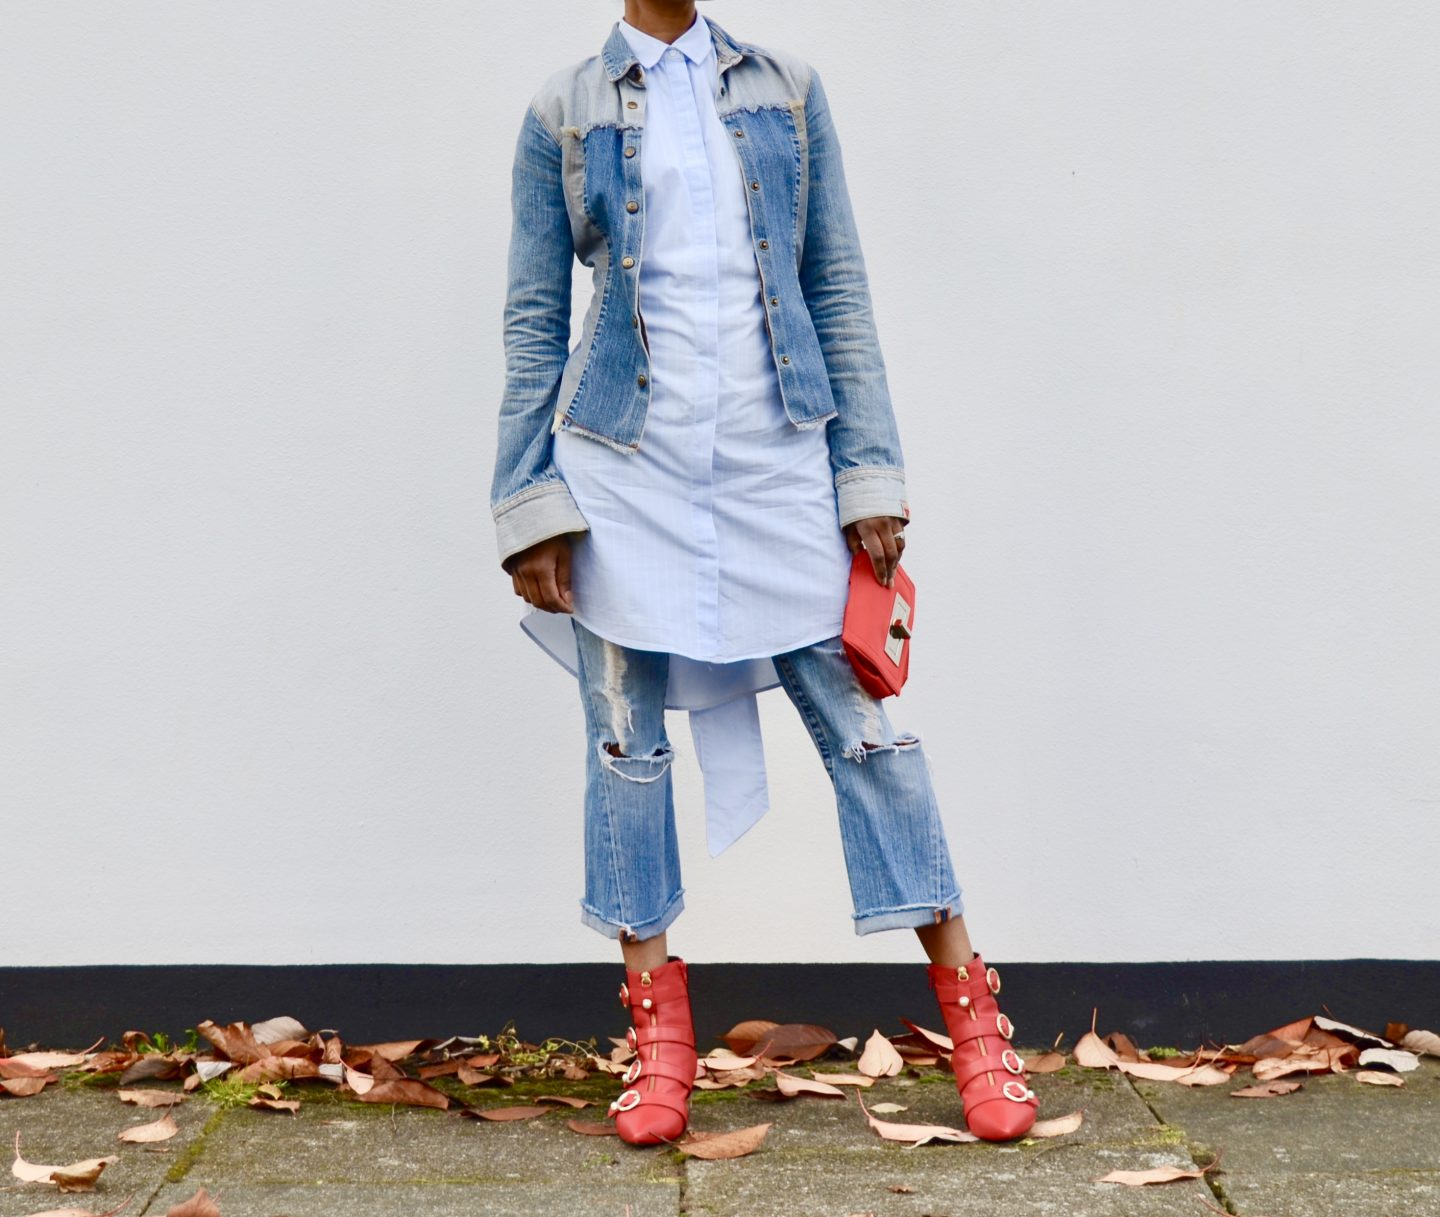 Denim and red boots